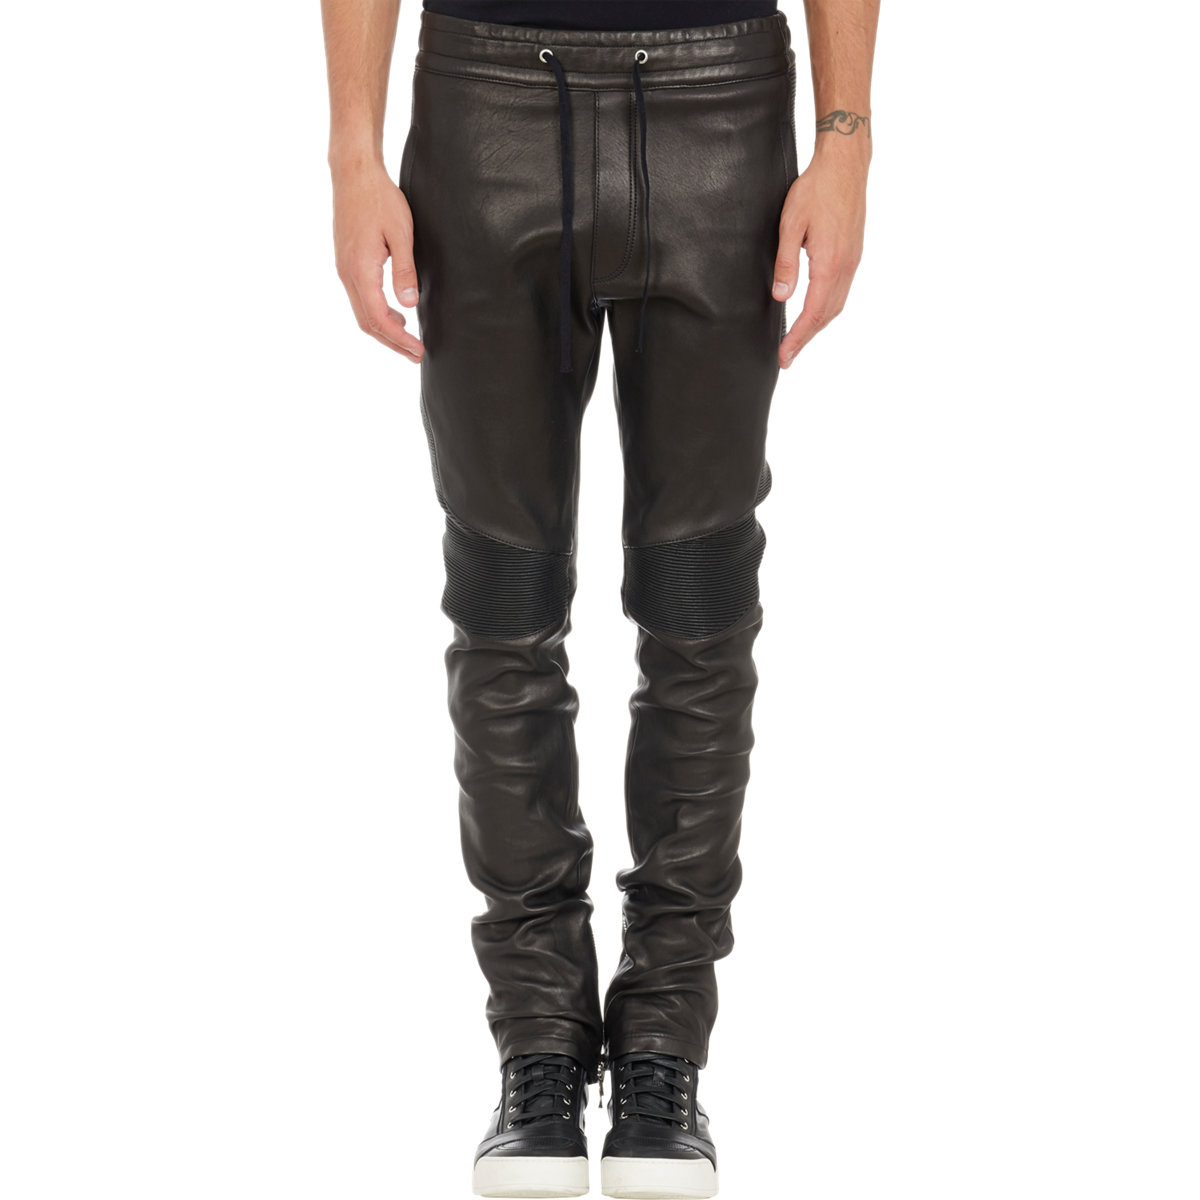 moto pants mens. gallery moto pants mens y